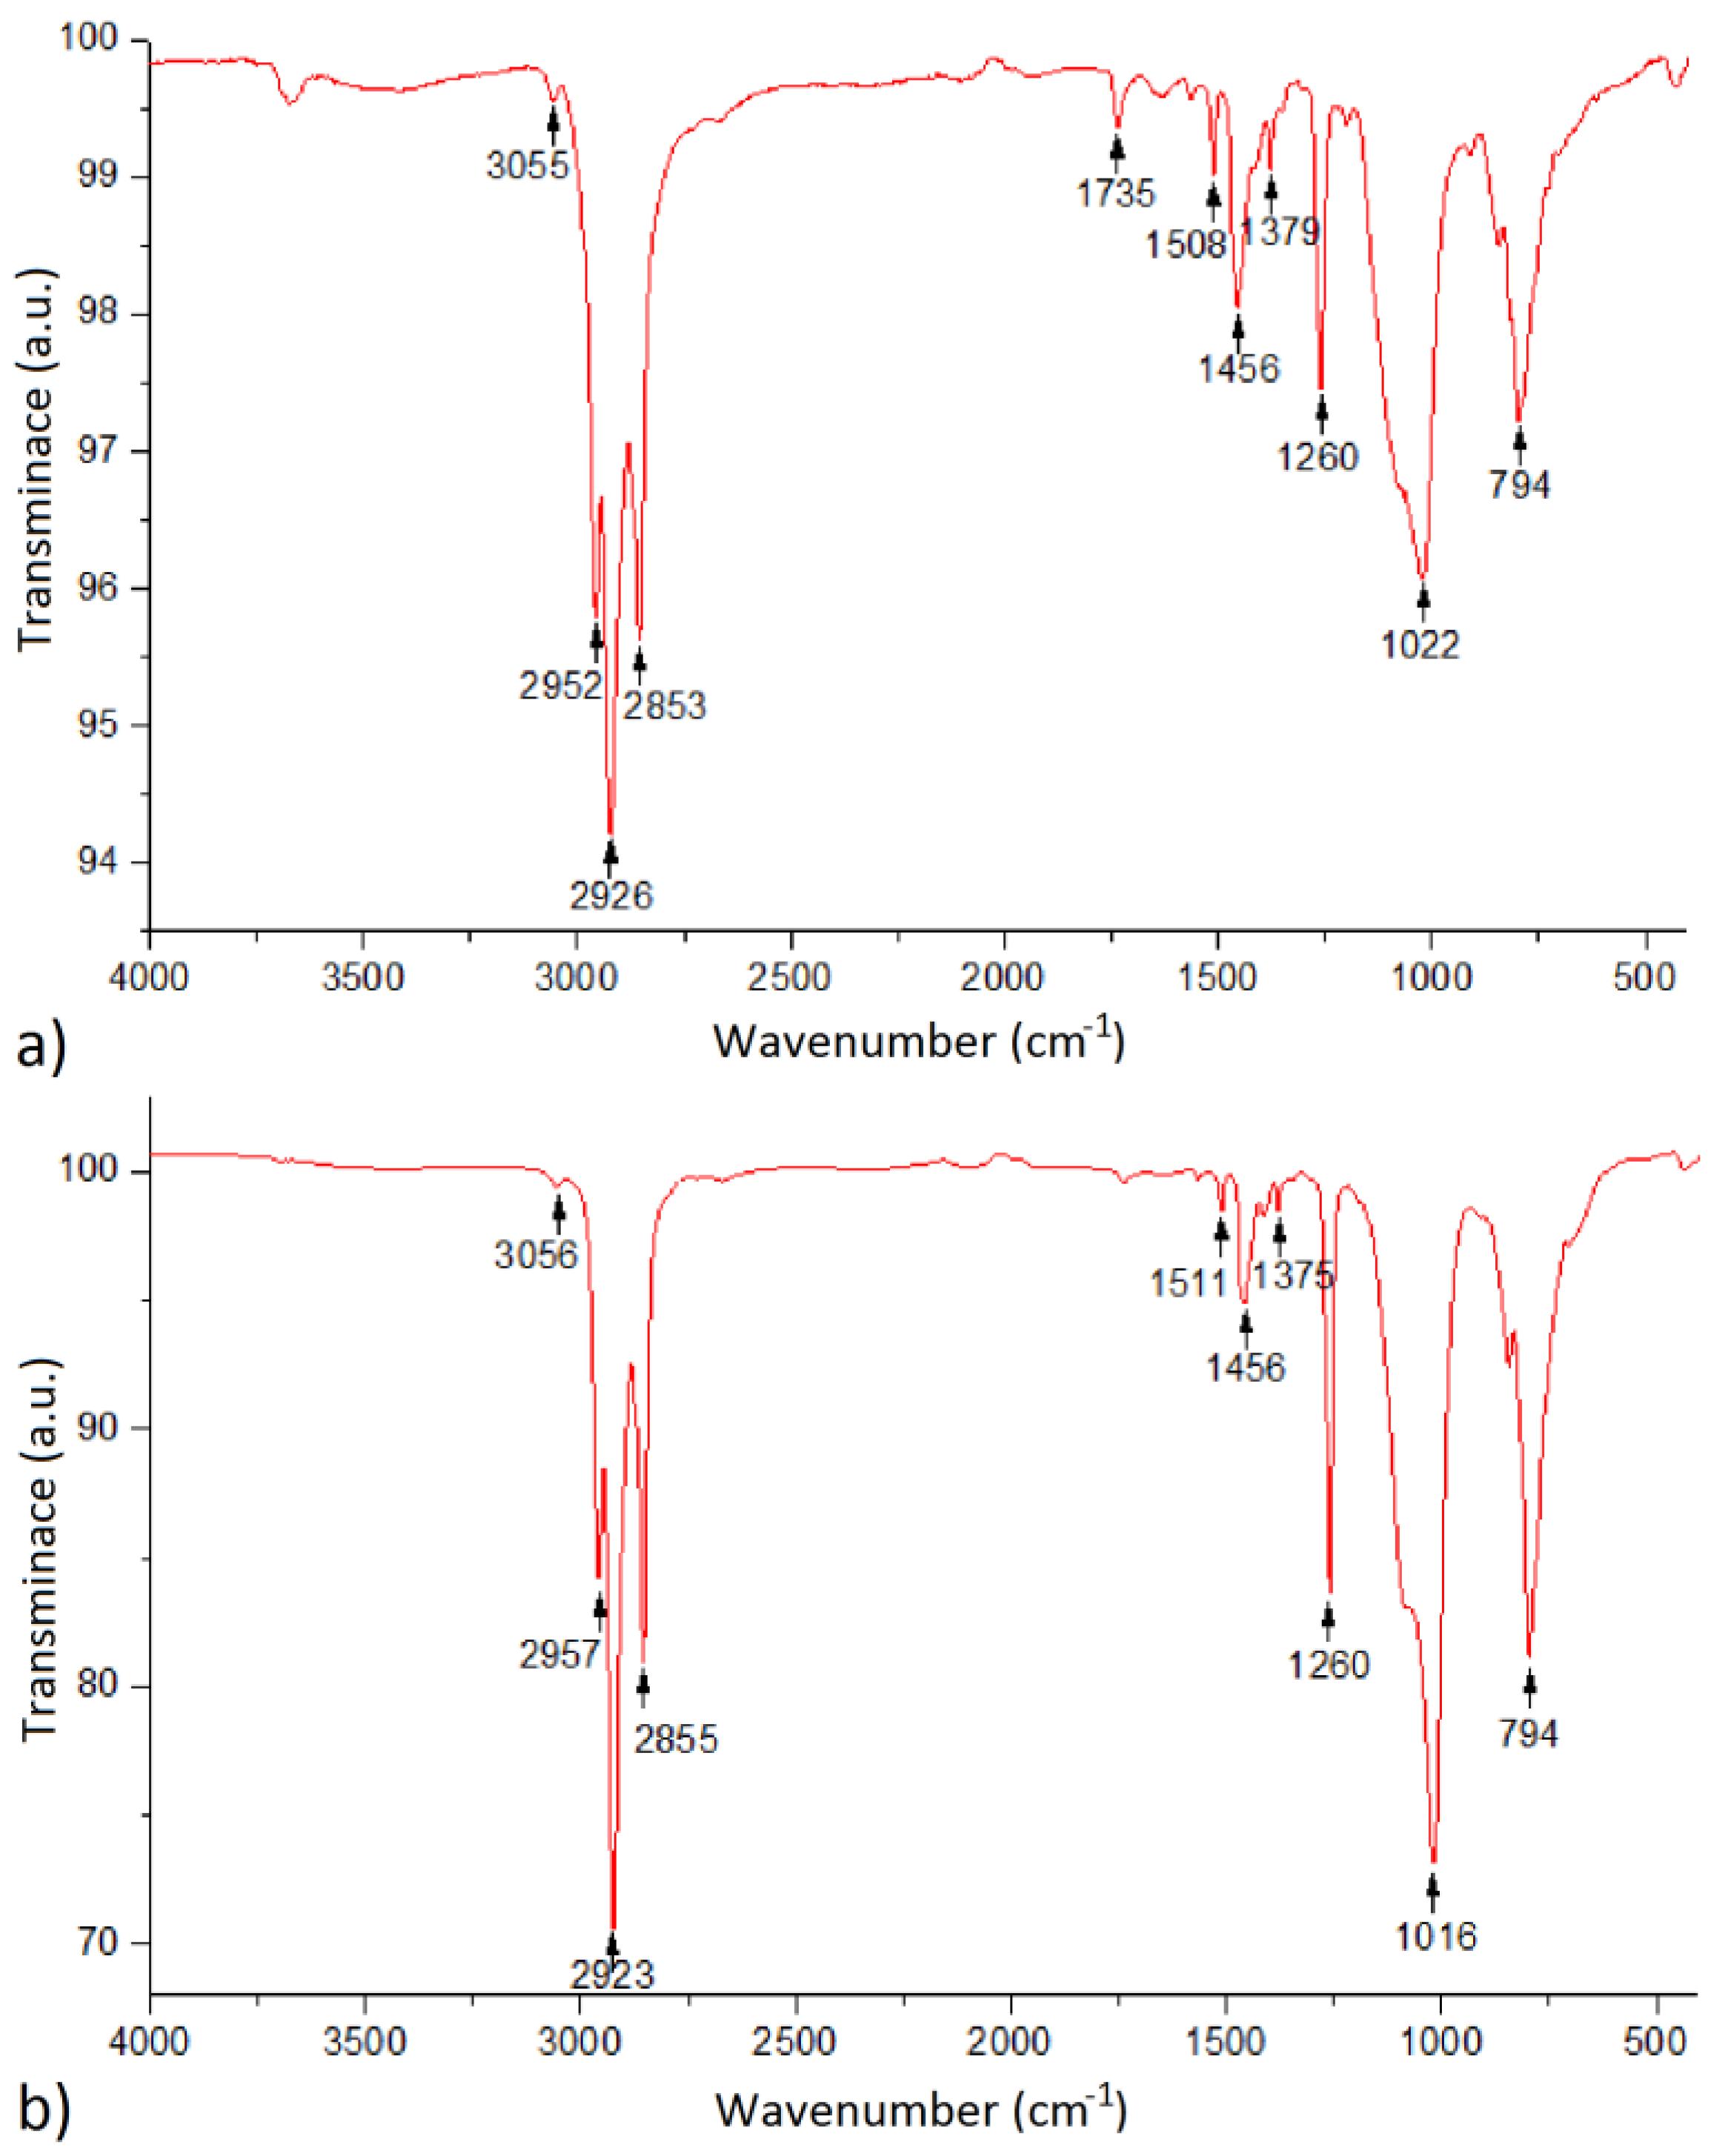 transform infrared spectroscopy essay Fourier transform infrared (ftir) analysis is often the primary technique used to identify organic compounds or investigate sample composition the technique can be used to identify coating materials or to compare levels of epoxy cure, for example.